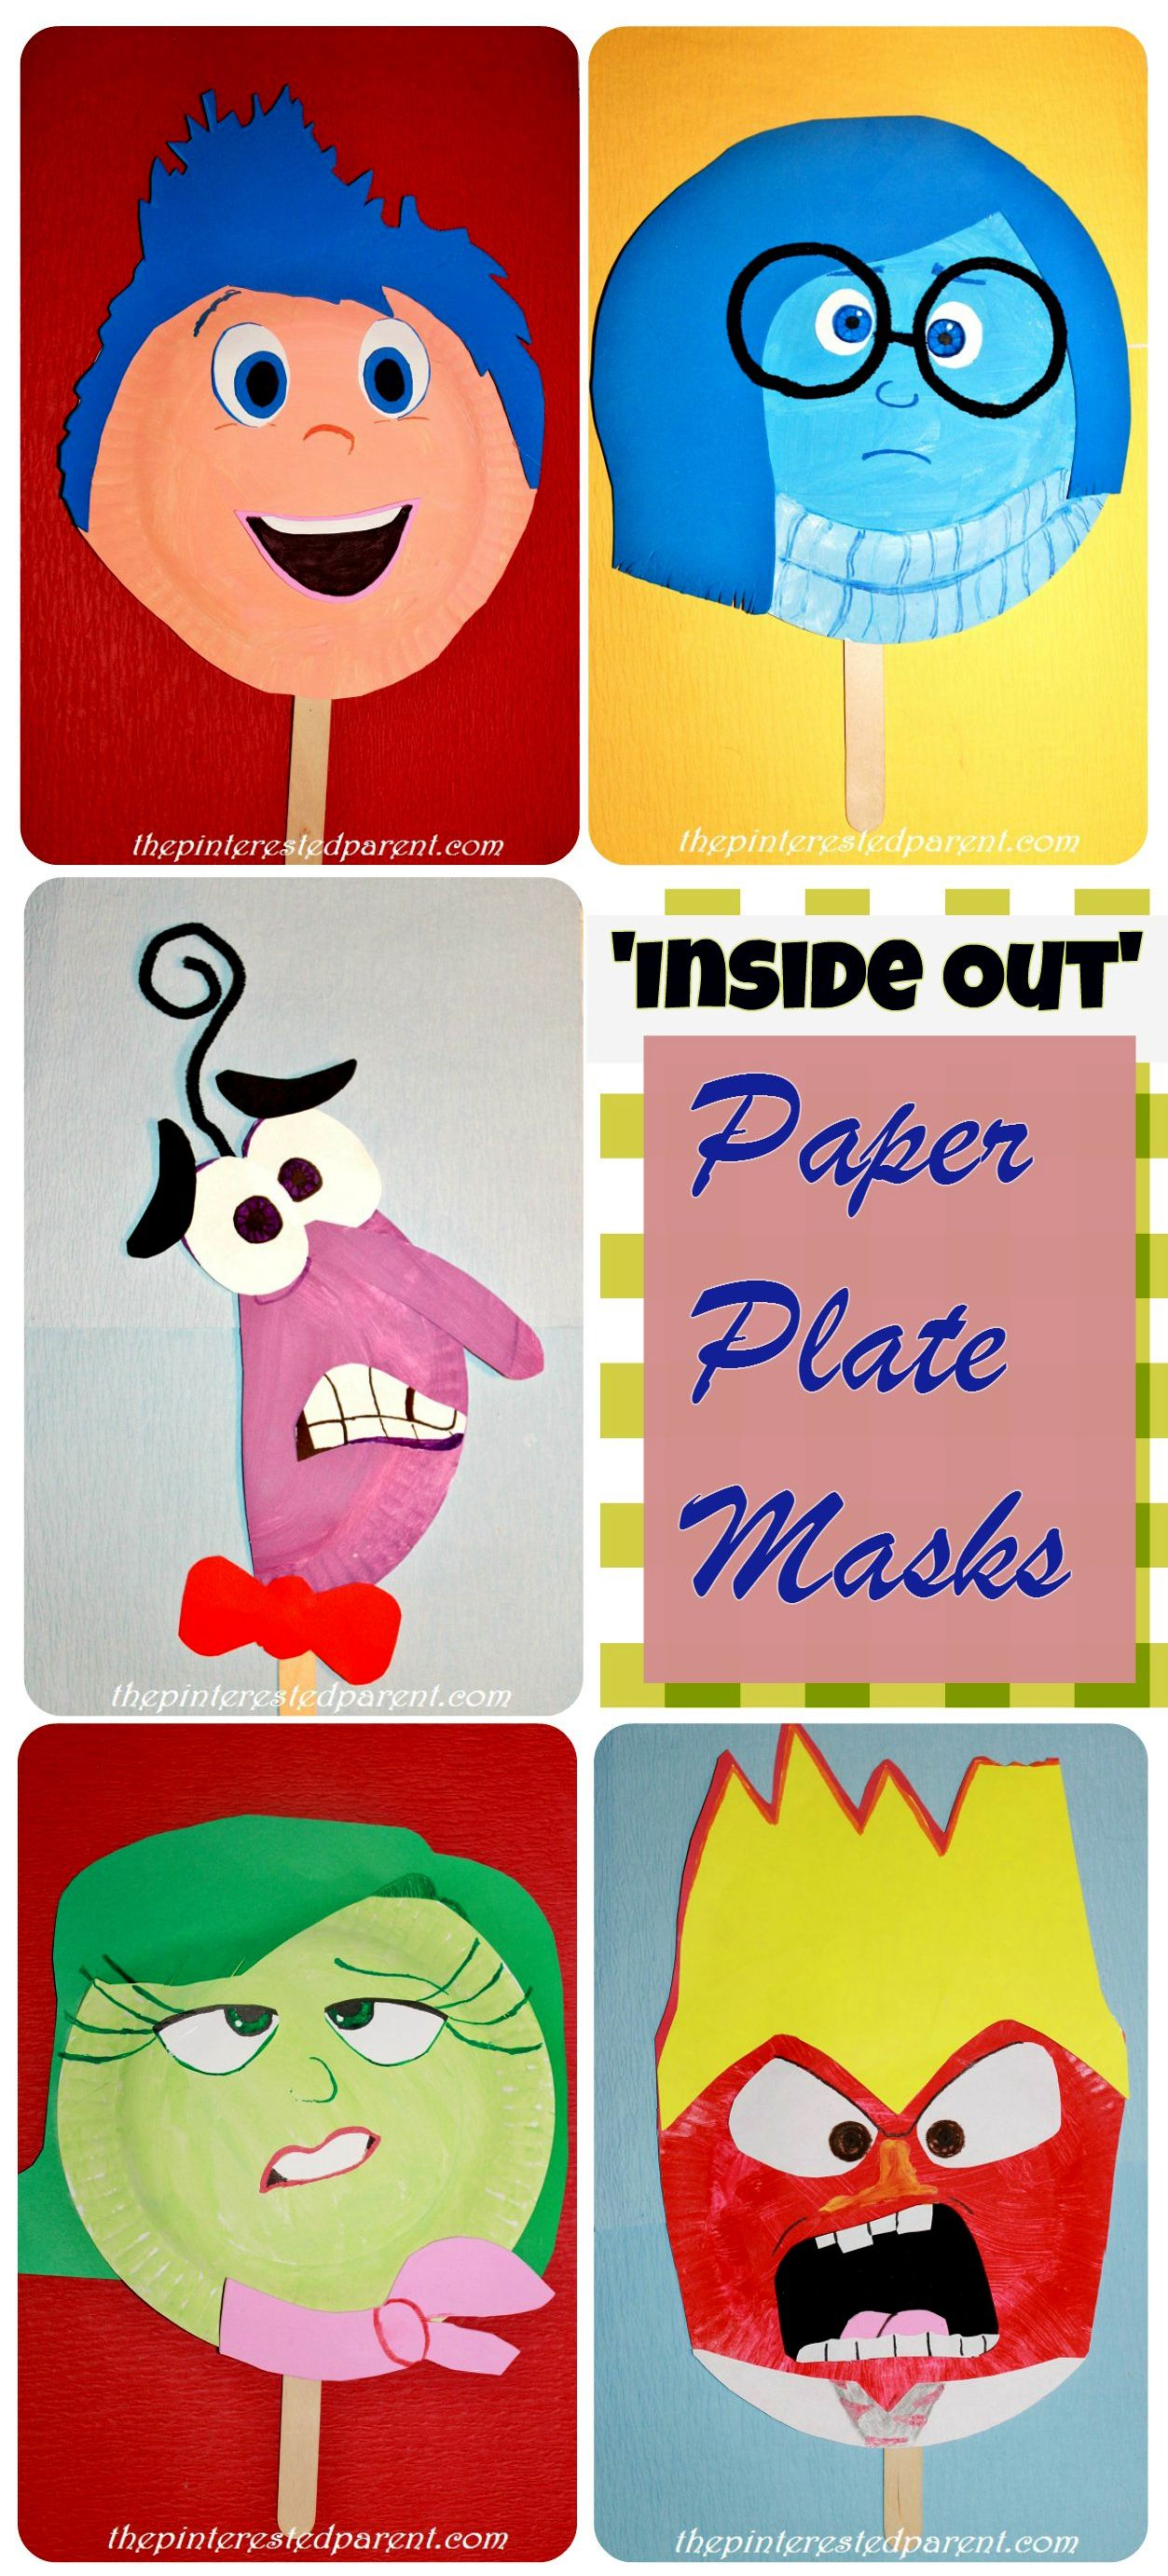 Inside Out Paper Plate Masks